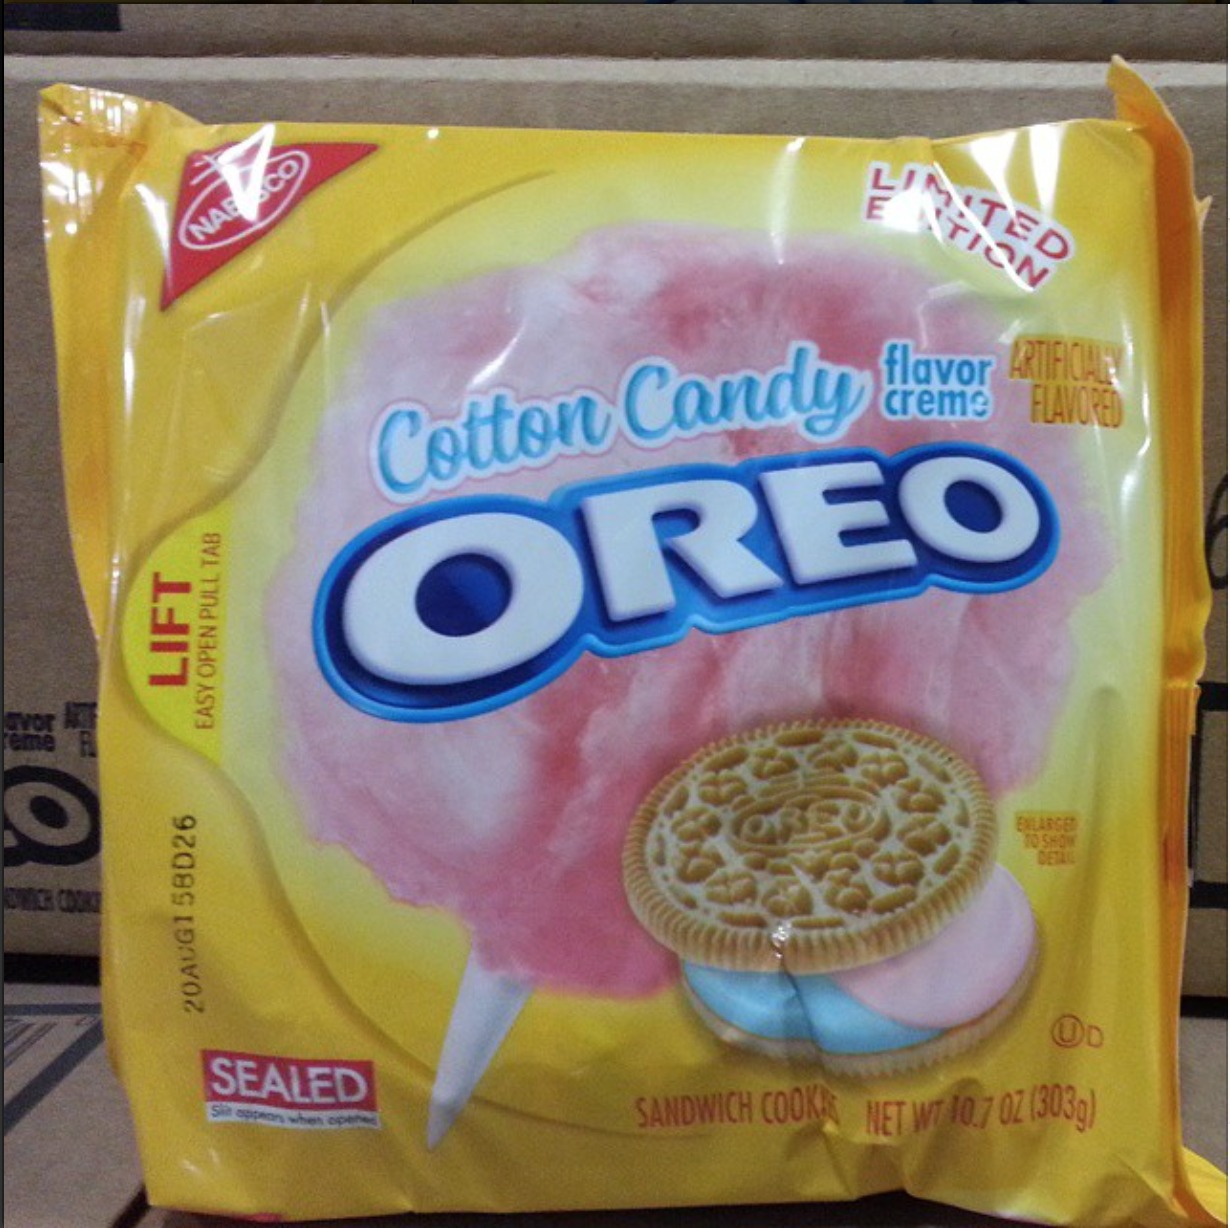 Today in cookies: Cotton candy Oreos are coming!